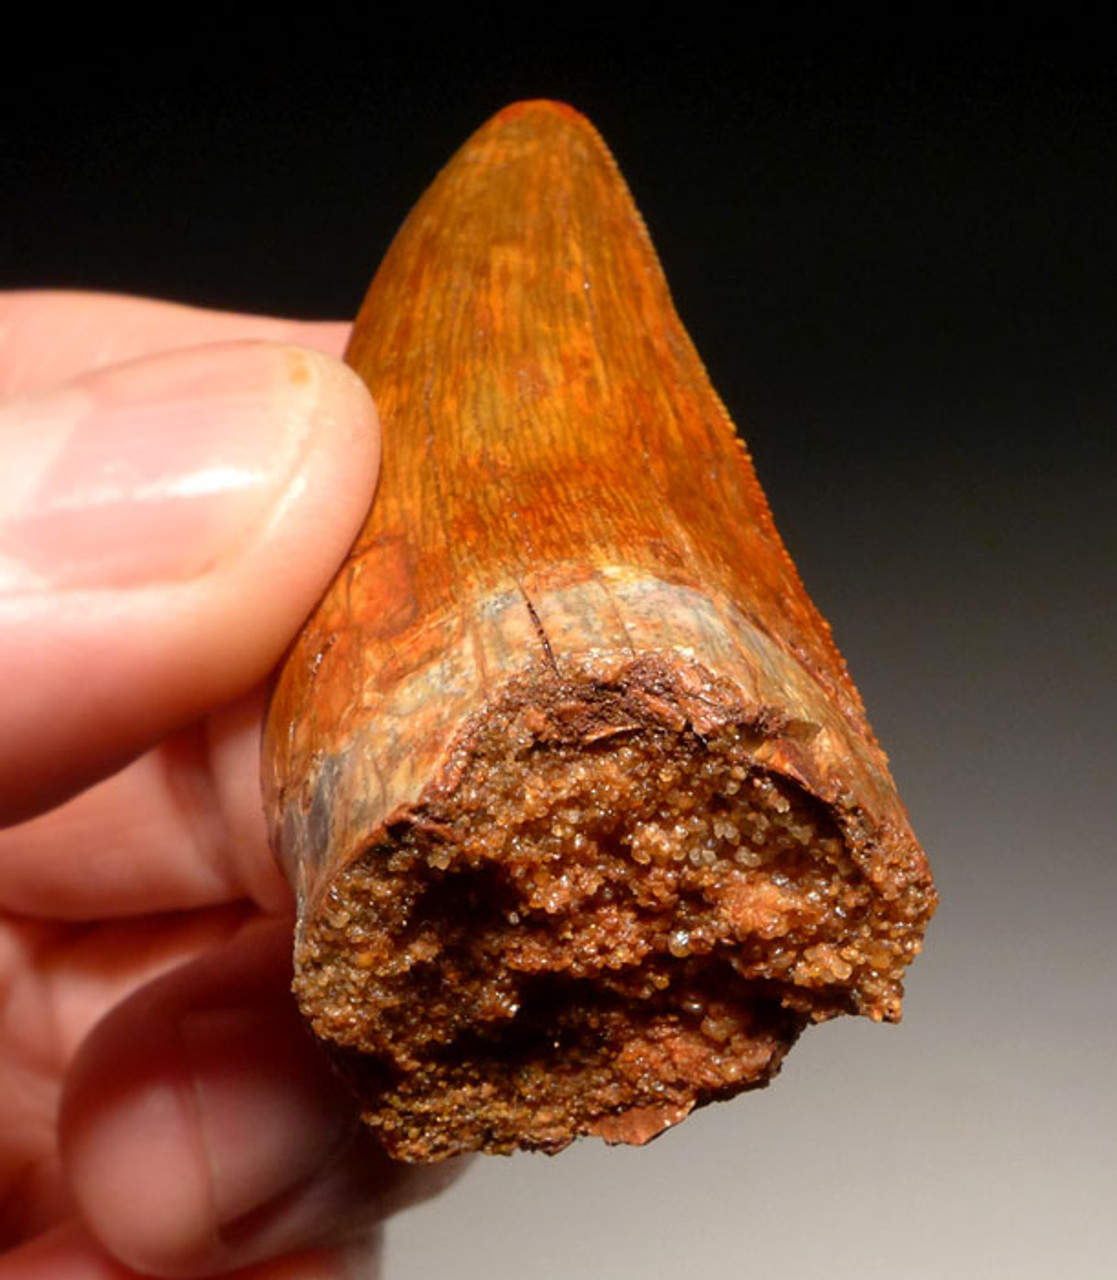 DT2-065 - SUPREME GRADE UNBROKEN 2.25 INCH CARCHARODONTOSAURUS DINOSAUR FOSSIL TOOTH FROM THE FRONT OF THE JAW